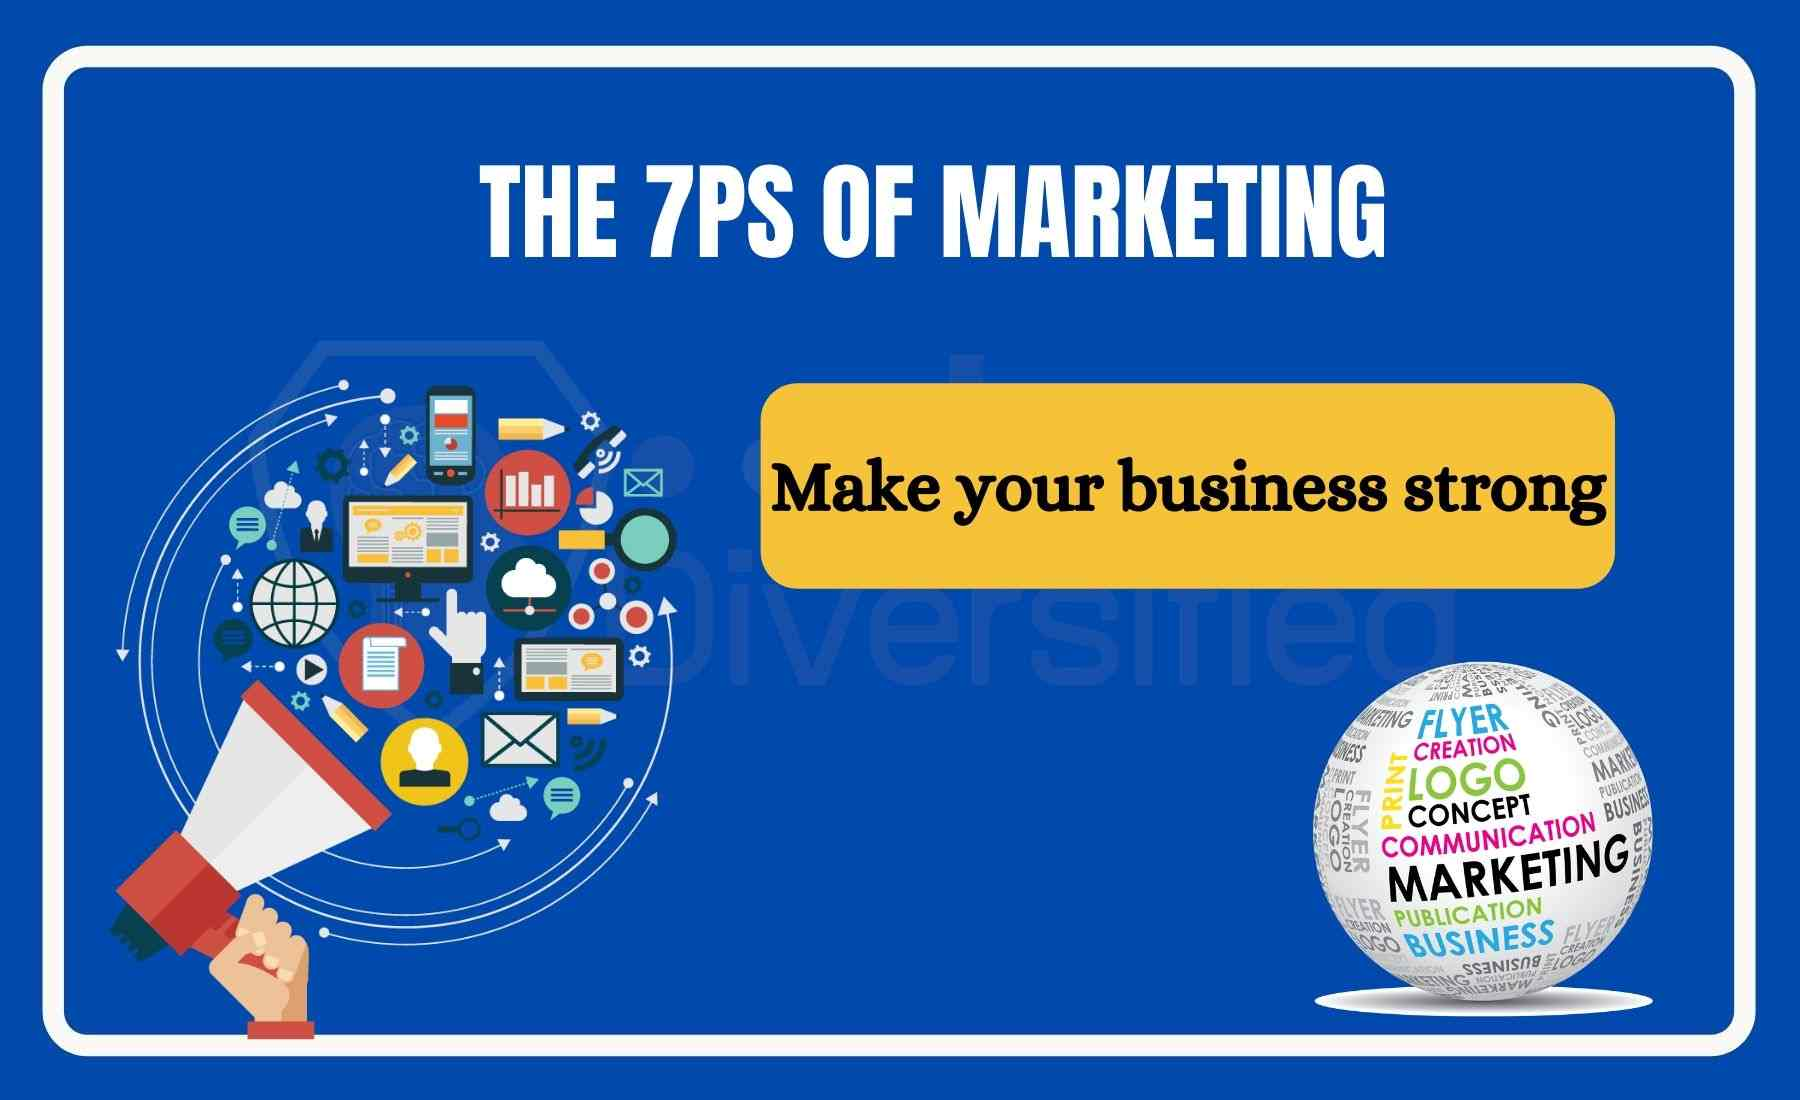 The 7Ps of Marketing